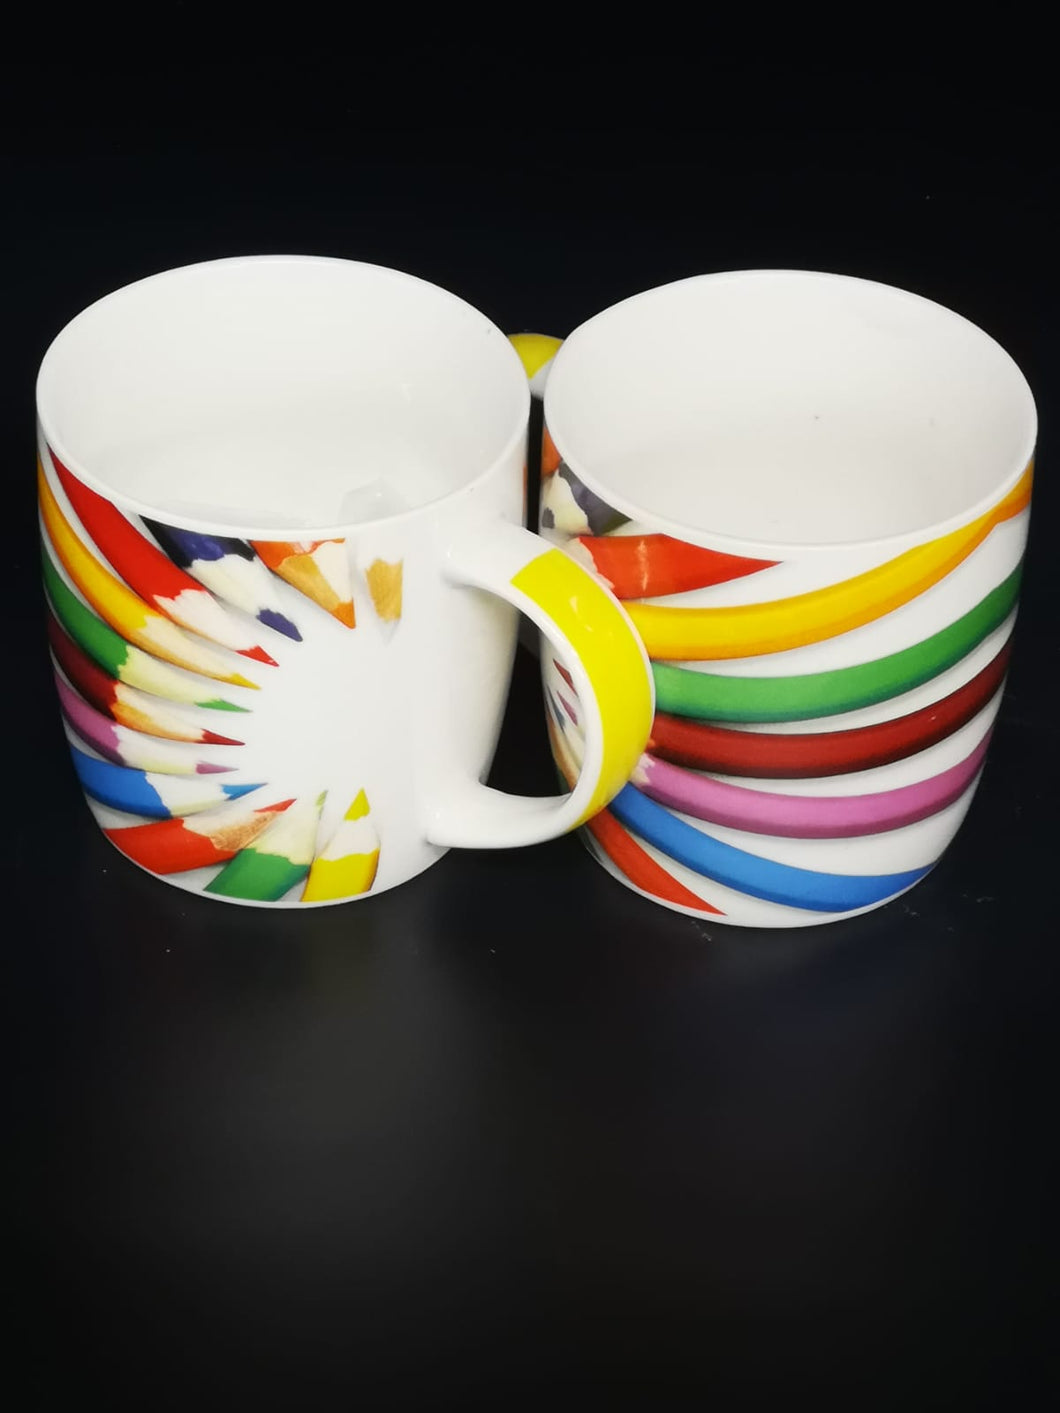 Mug with Pencil design